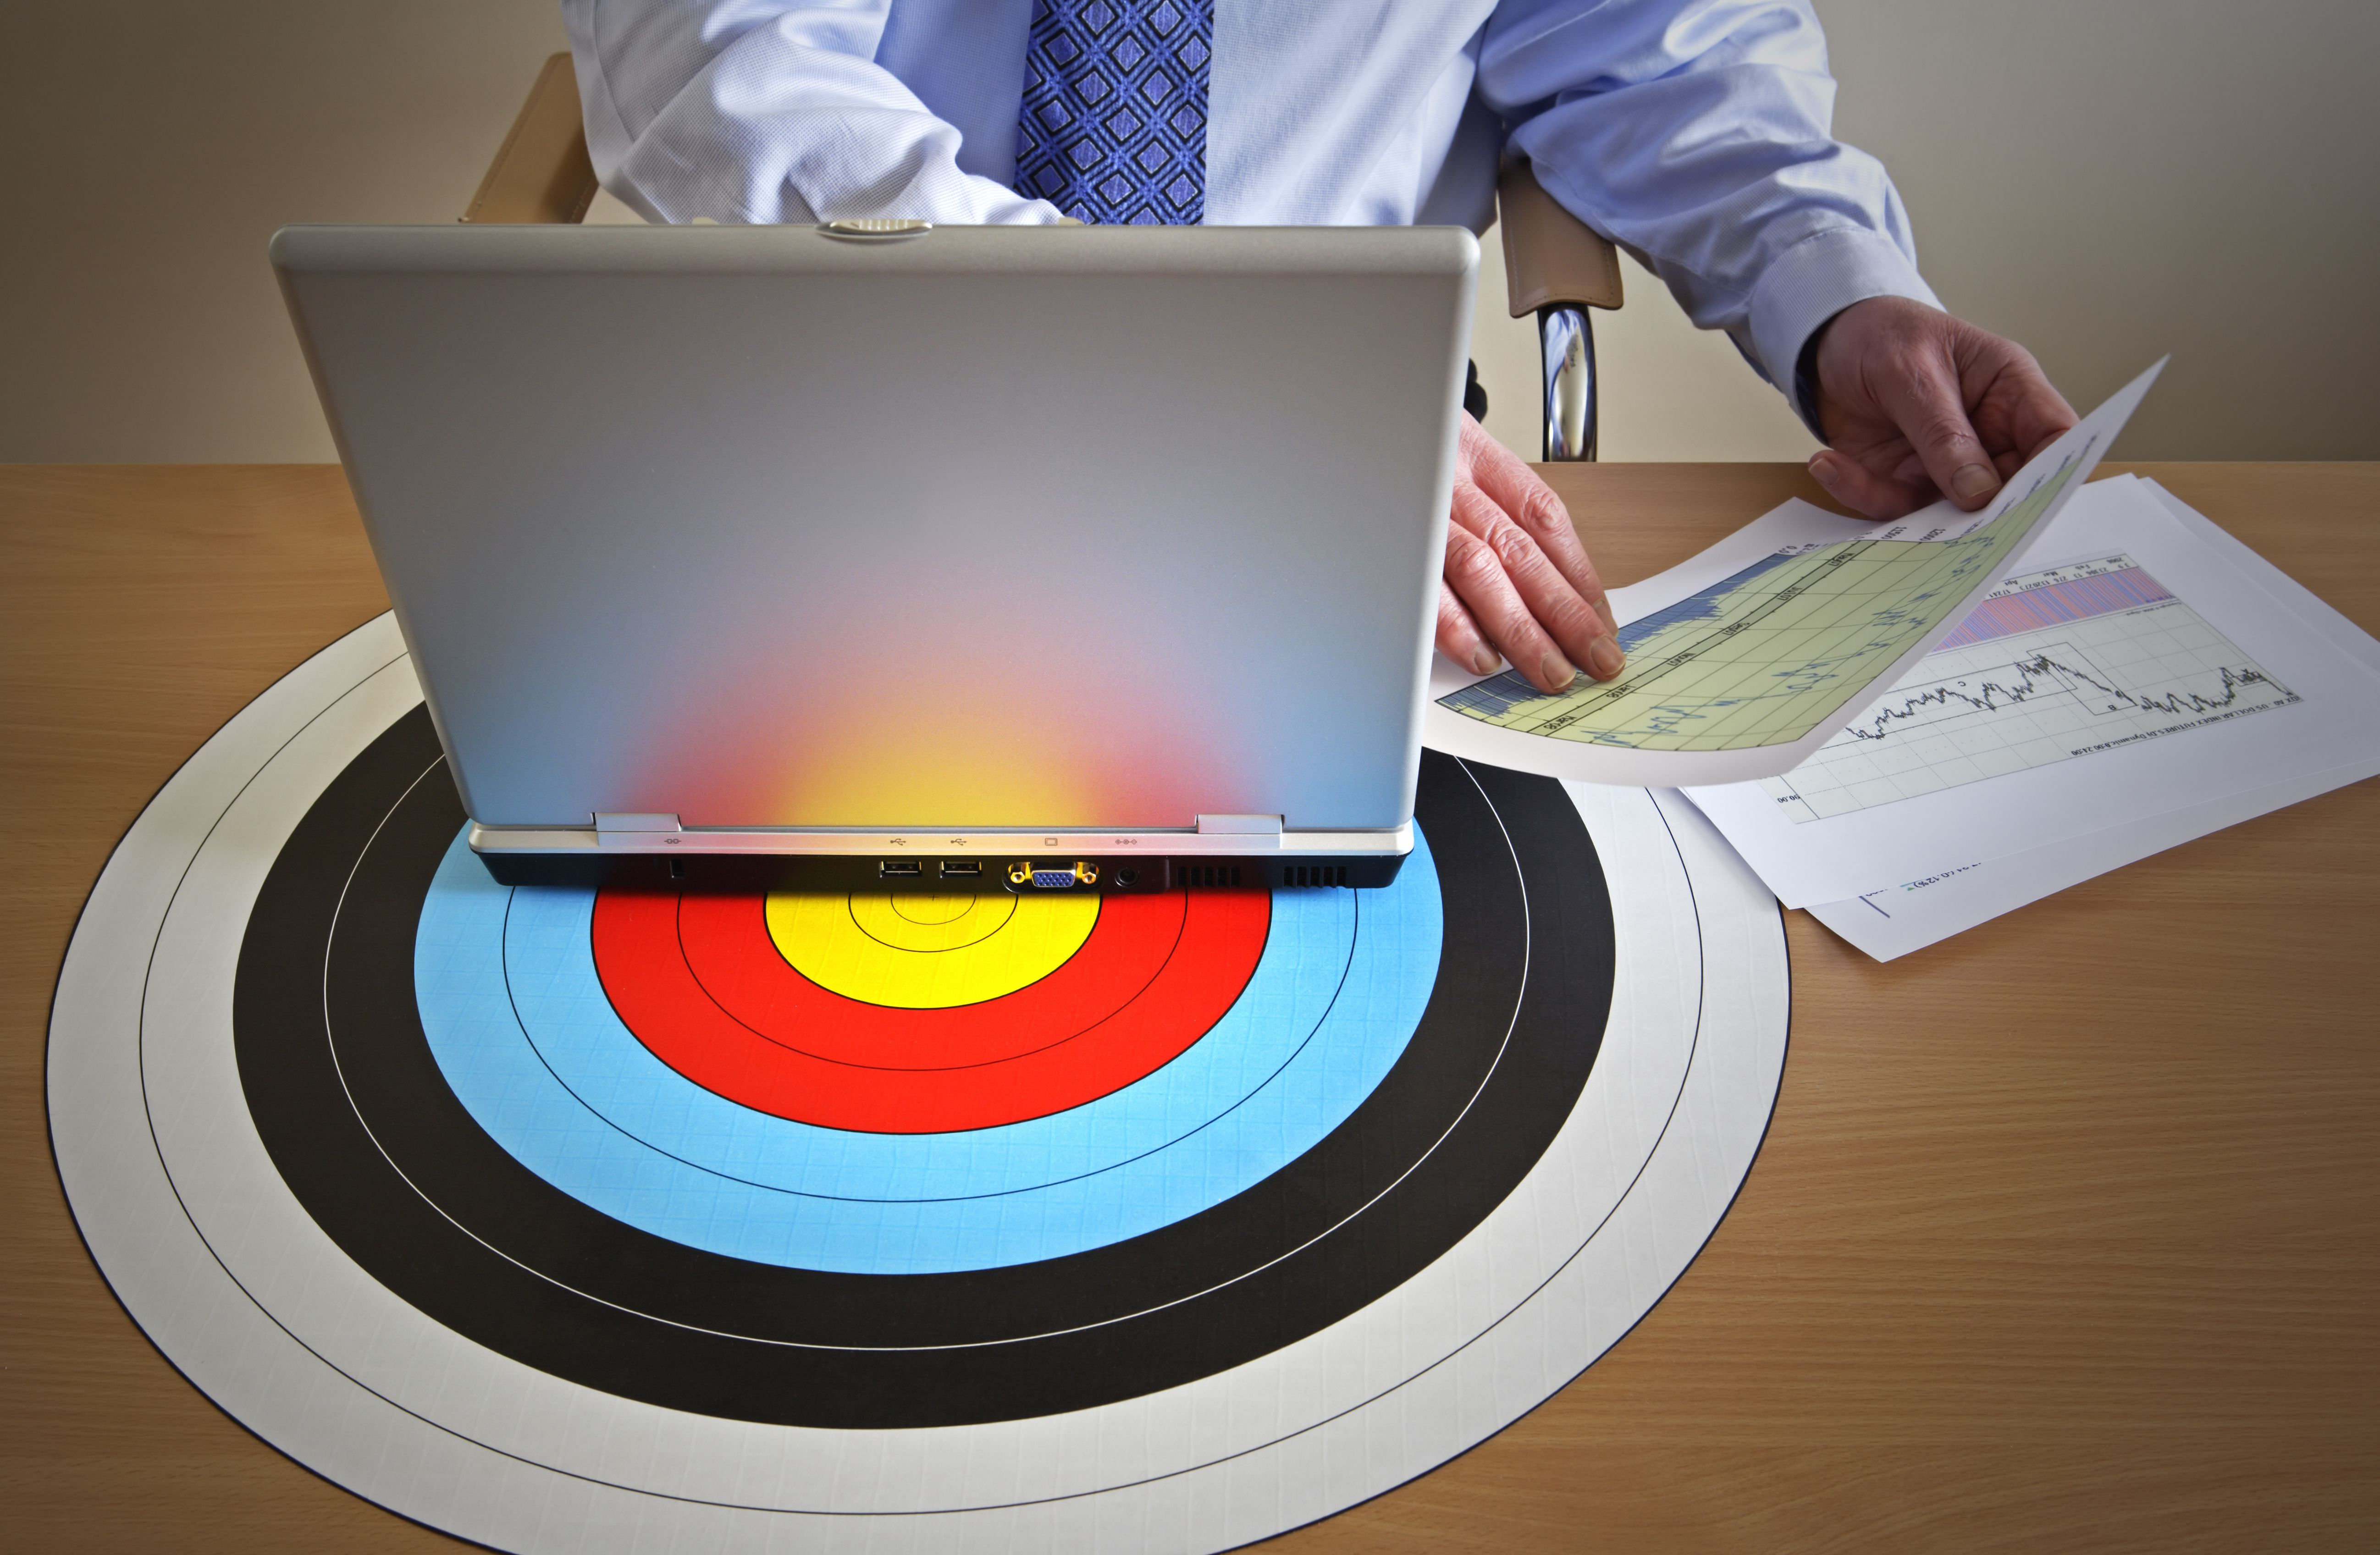 How To Build Your Employer Target List Find Your Dream Job